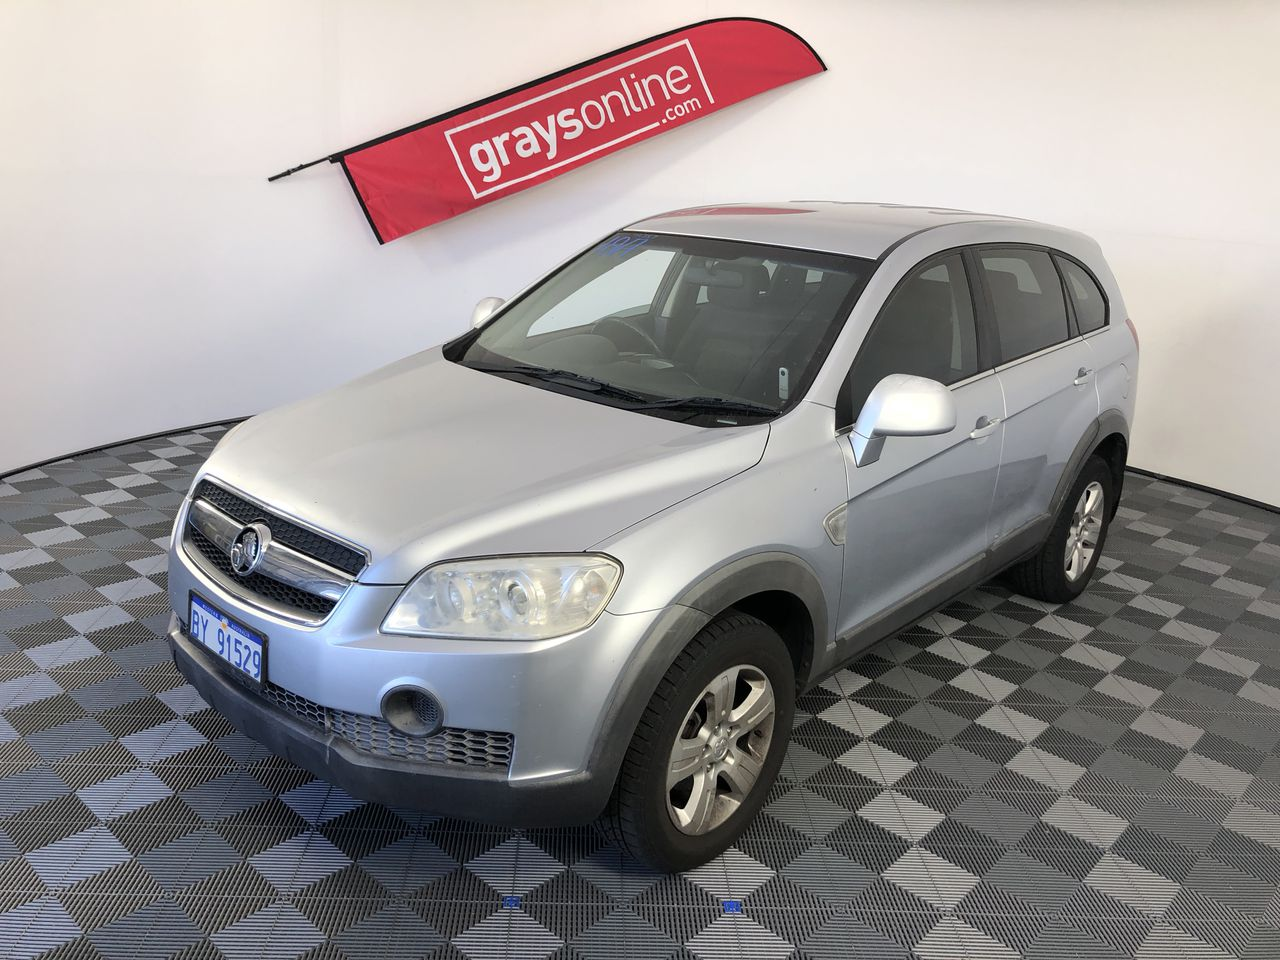 2008 Holden Captiva SX (4x4) CG Automatic Wagon